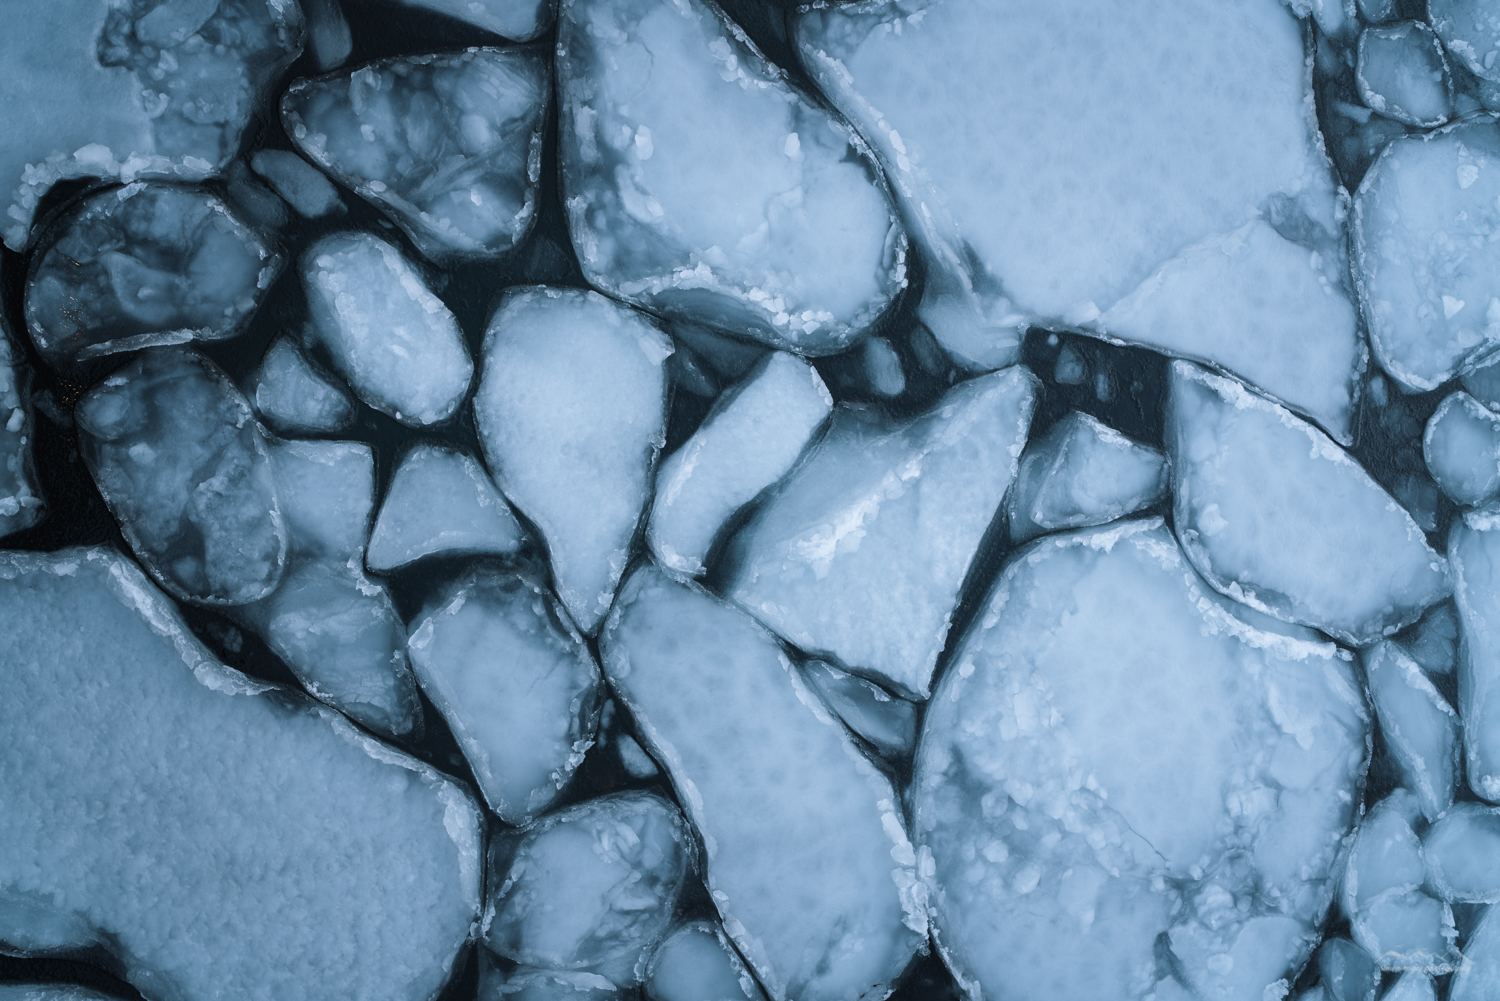 Photography of cracked ice in a fjord near Ballstad, Lofoten, Norway